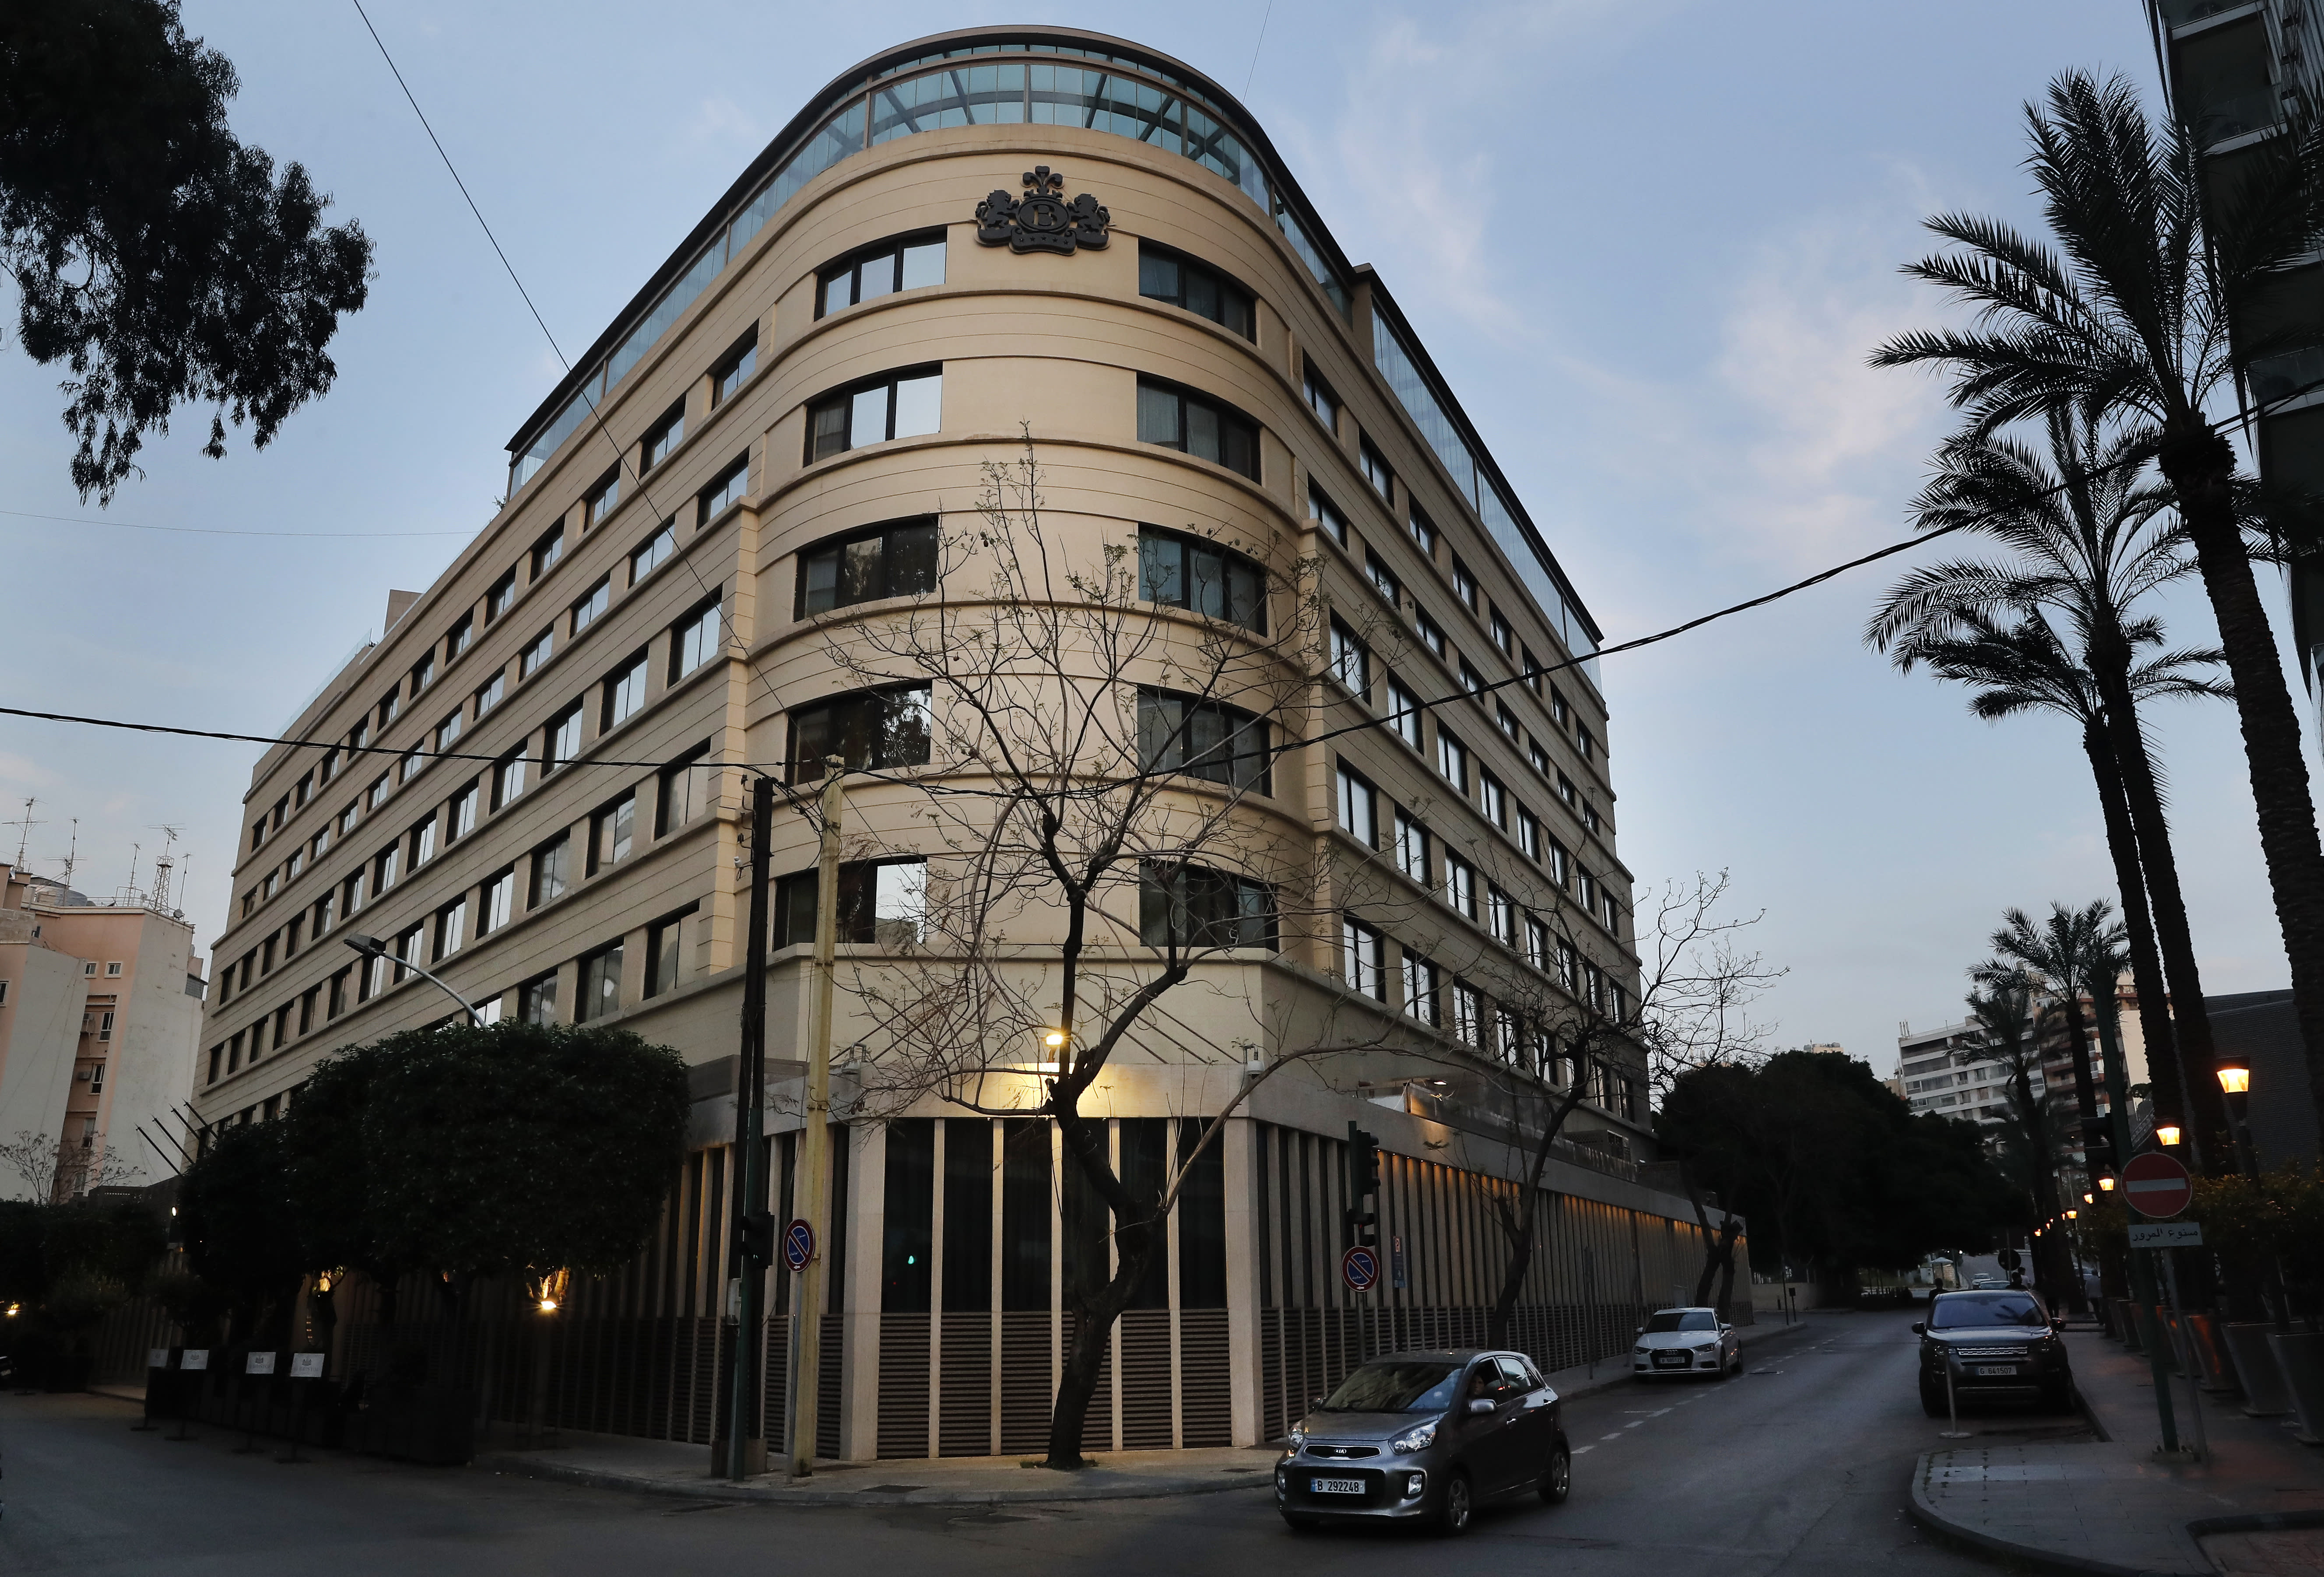 A car drives past Le Bristol hotel in Beirut, Lebanon, Saturday, April 18, 2020. One of the country's landmark hotels that has survived the country's bloody 15-year civil war is closing its doors due to a combination of an economic crisis and the global health threat of the COVID-19 coronavirus, one of its executives said Saturday. (AP Photo/Hussein Malla)